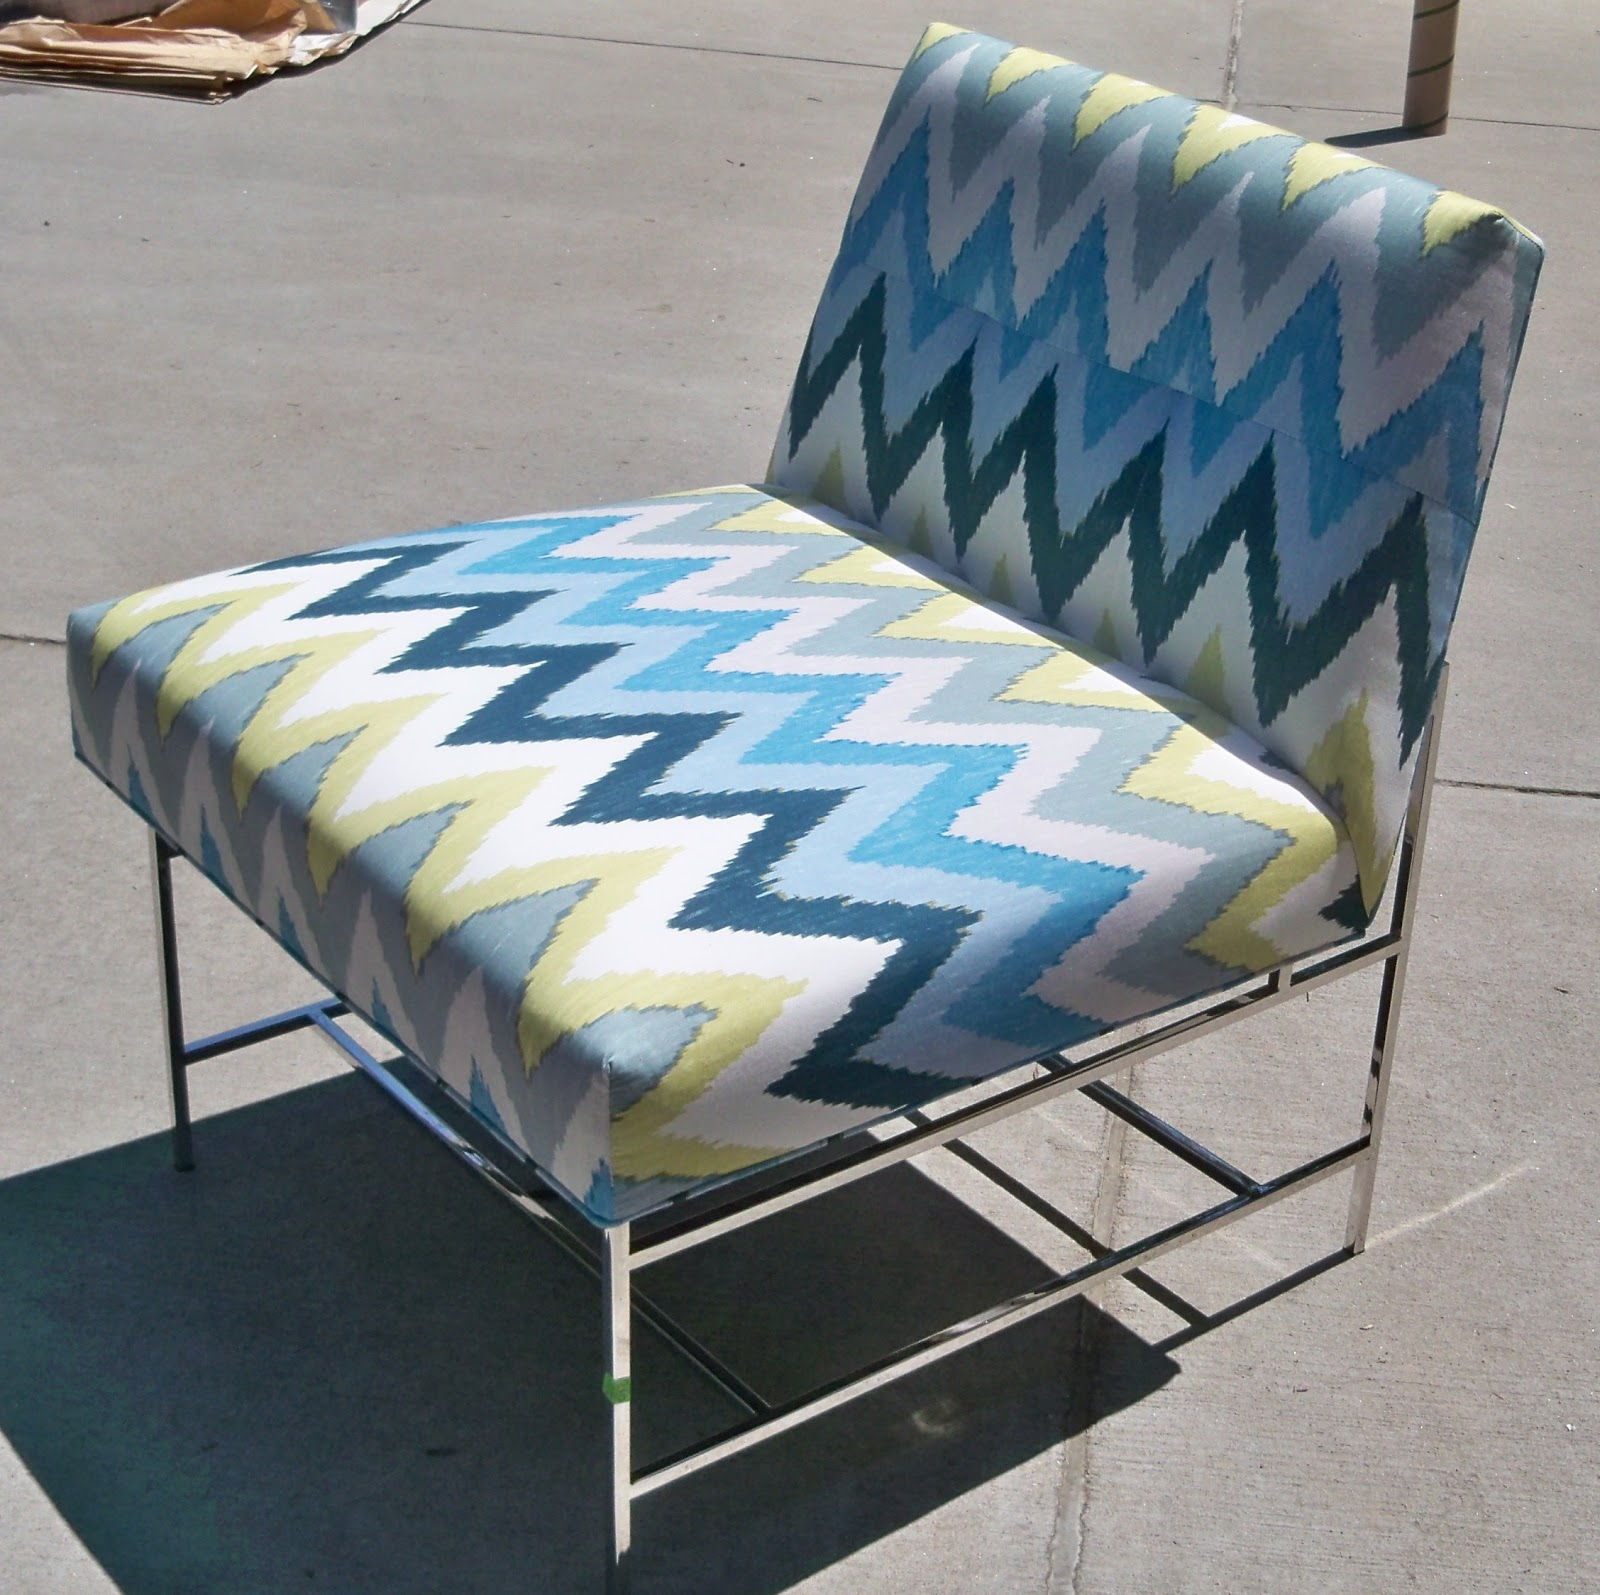 The First Chair Is From Vanguard Furniture. They Did A Great Job Using This  Wonderful Printed Ikat Pattern On Their Farris Chair. I Love The Stainless  Steel ...